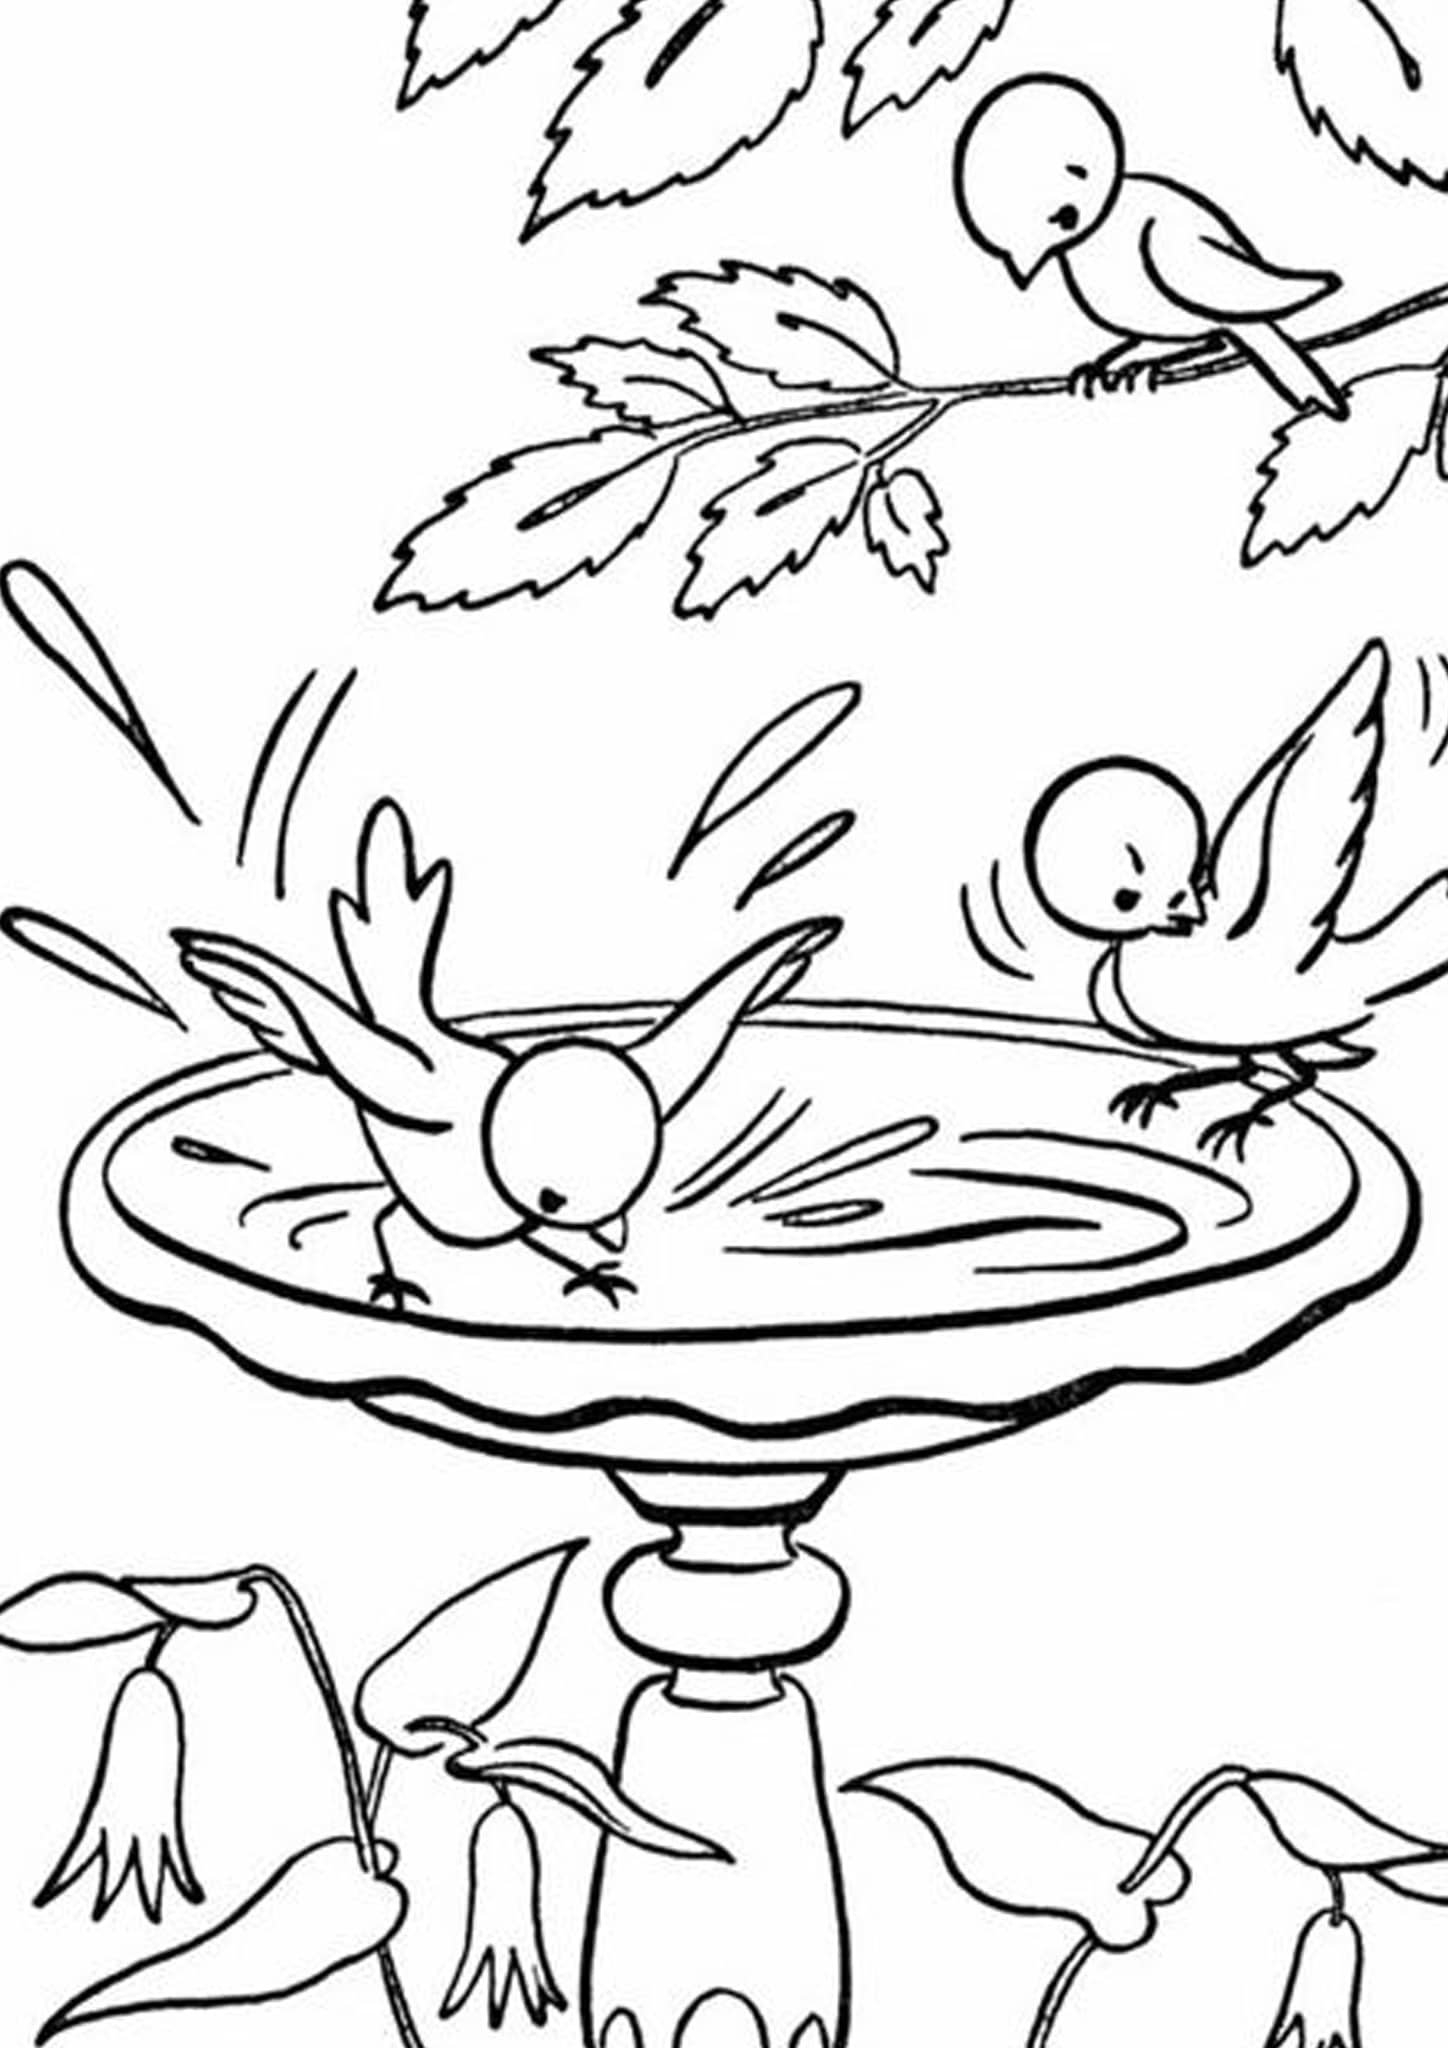 bird colouring pictures bird coloring pages bird colouring pictures